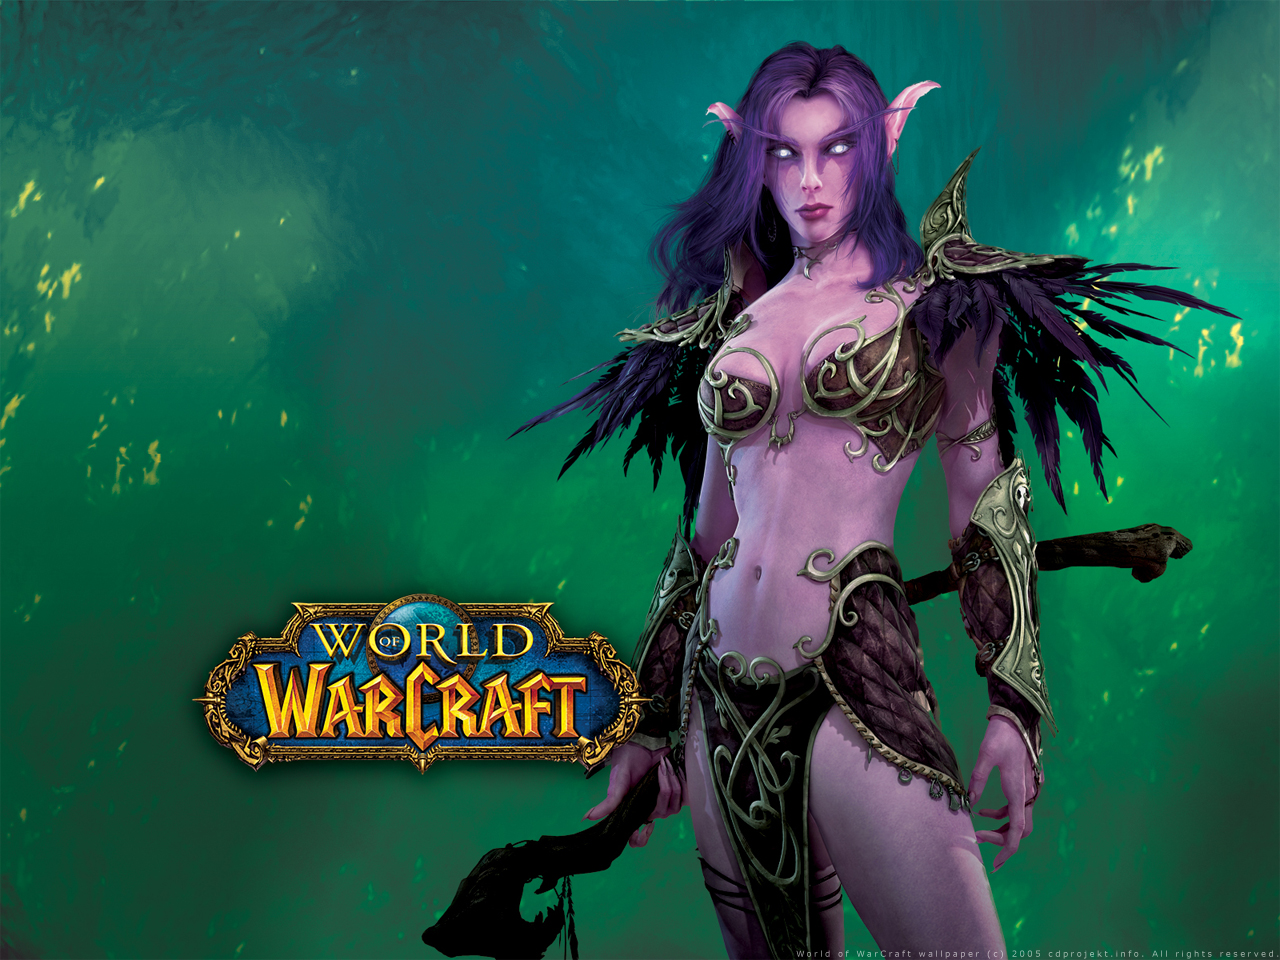 Hot night elf adult images